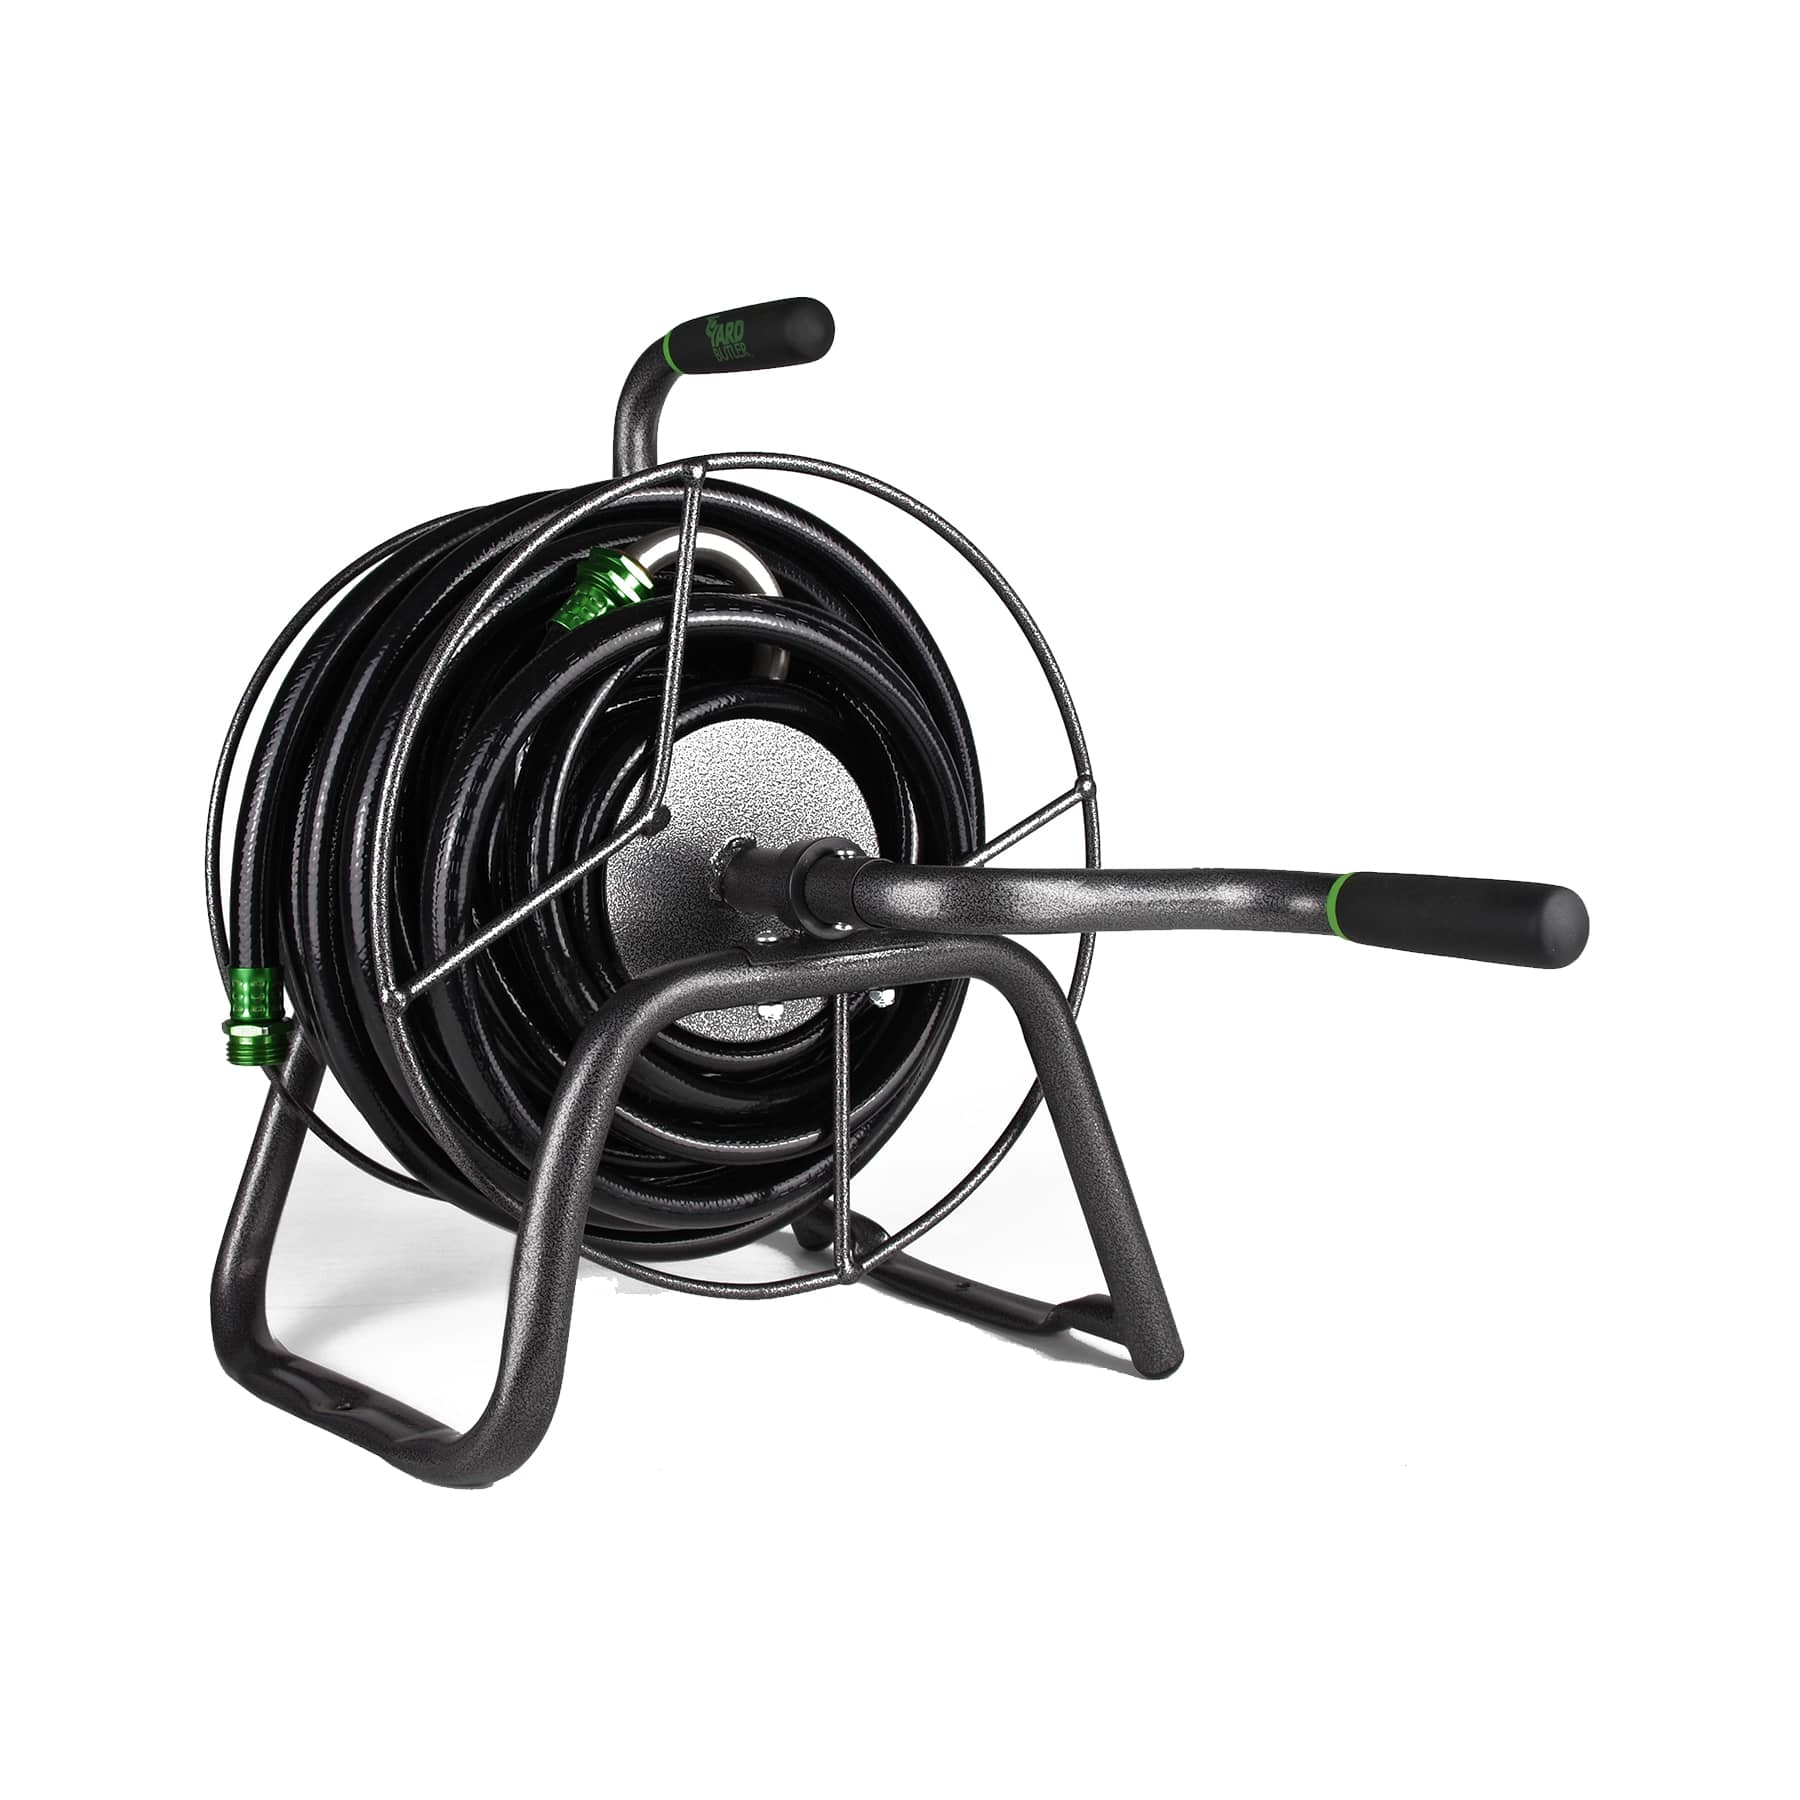 Handy Reel Bundle (50' of Garden Hose Attached)